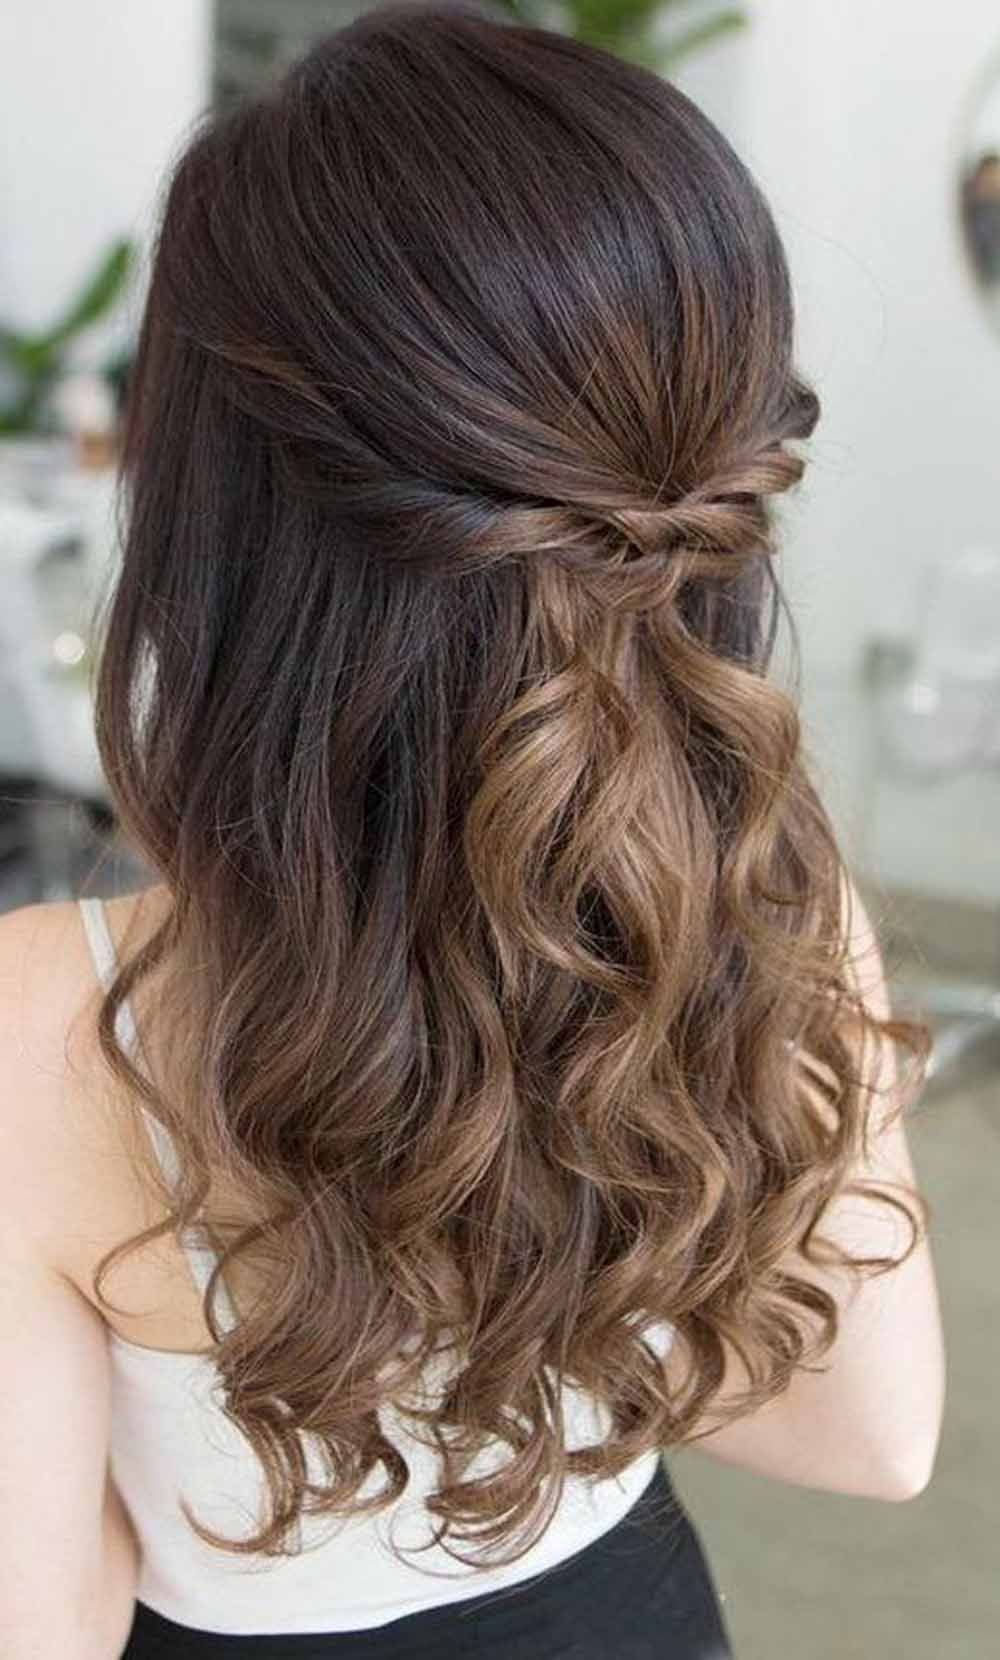 9 Prettiest Half Up Half Down Wedding Hairstyles For Women In 2020 Prom Hair Medium Hair Styles Medium Hair Styles